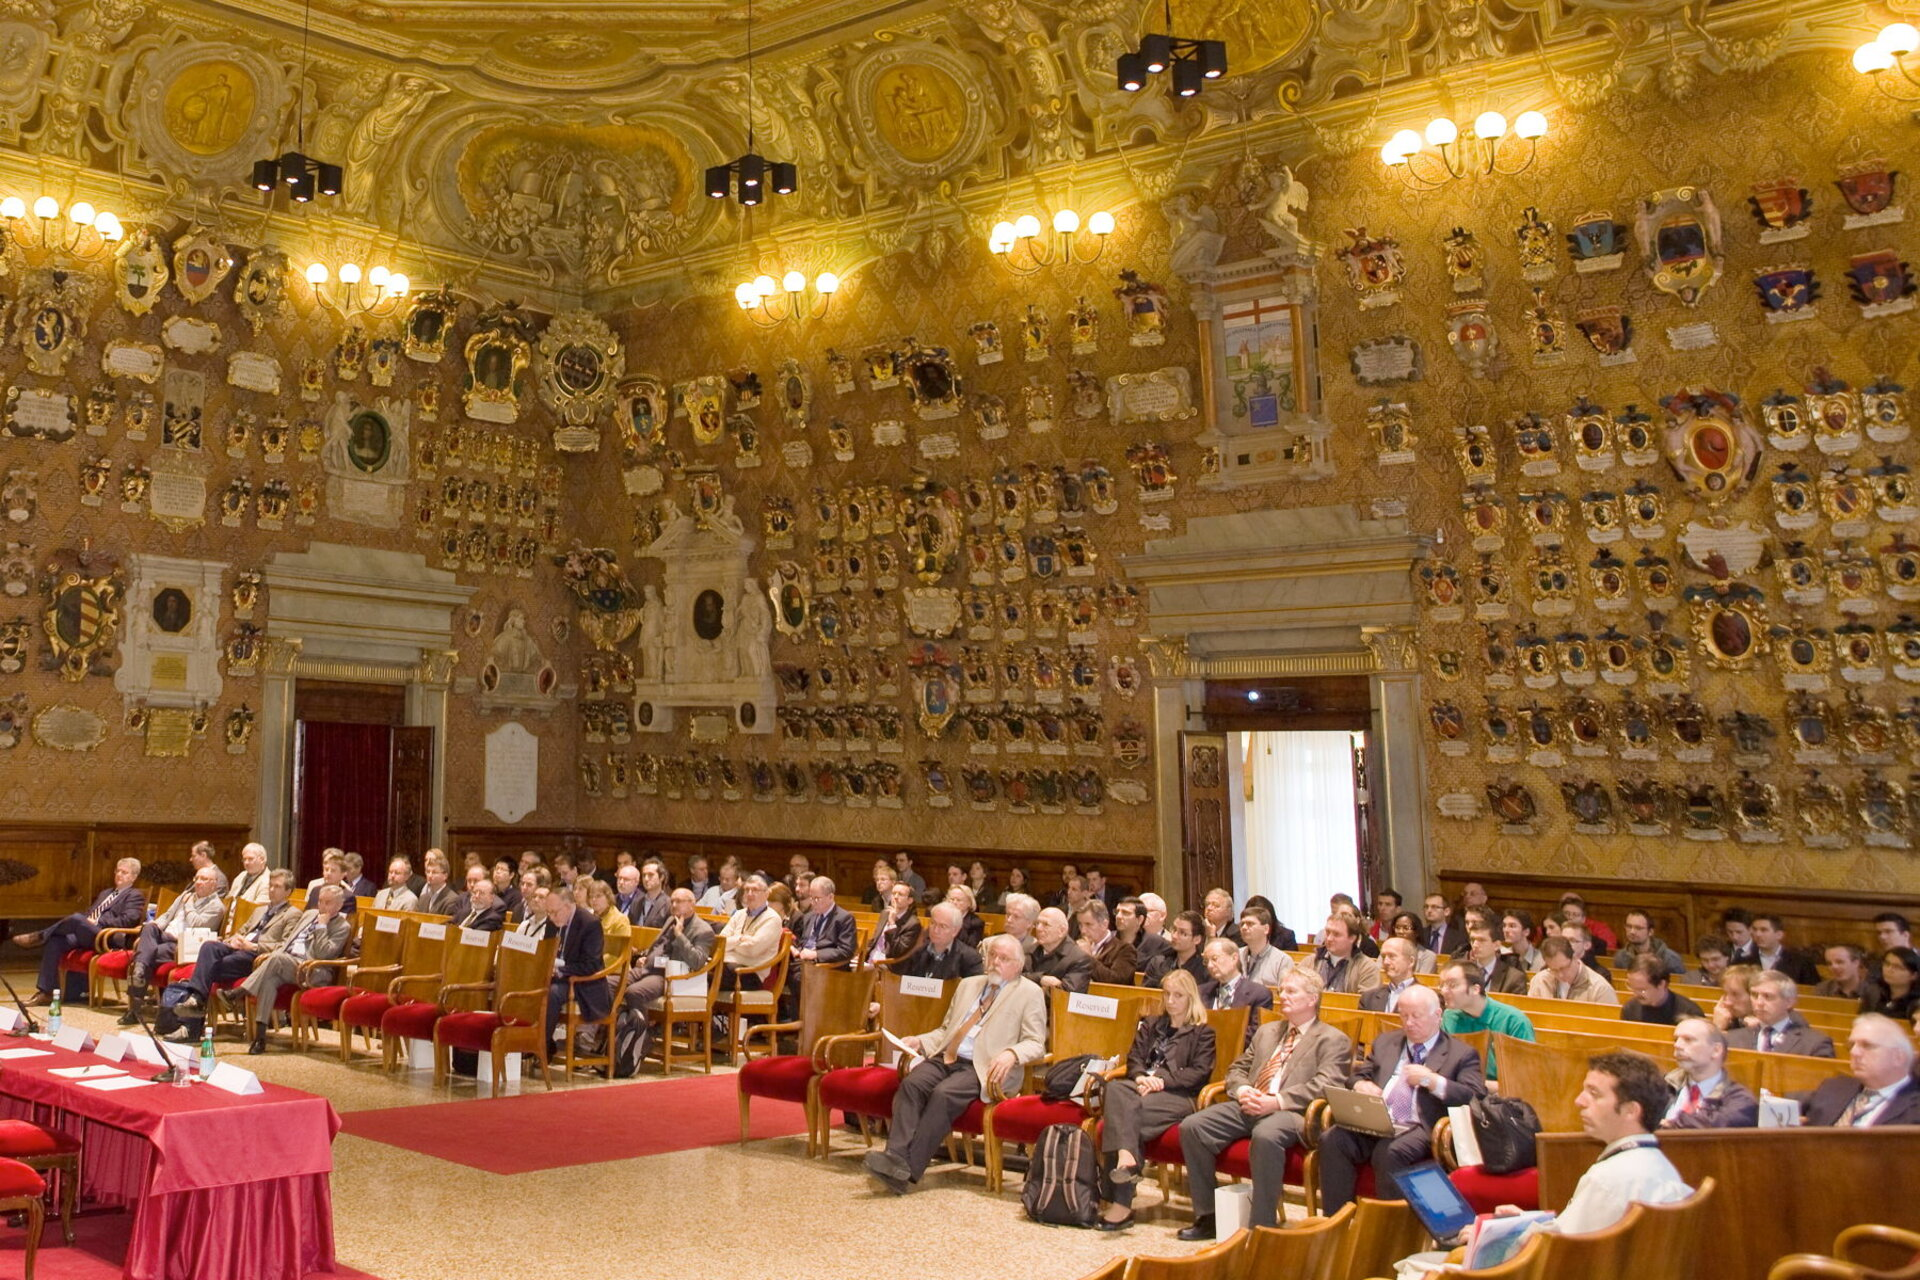 Audience at opening ceremony in the Aula Magna